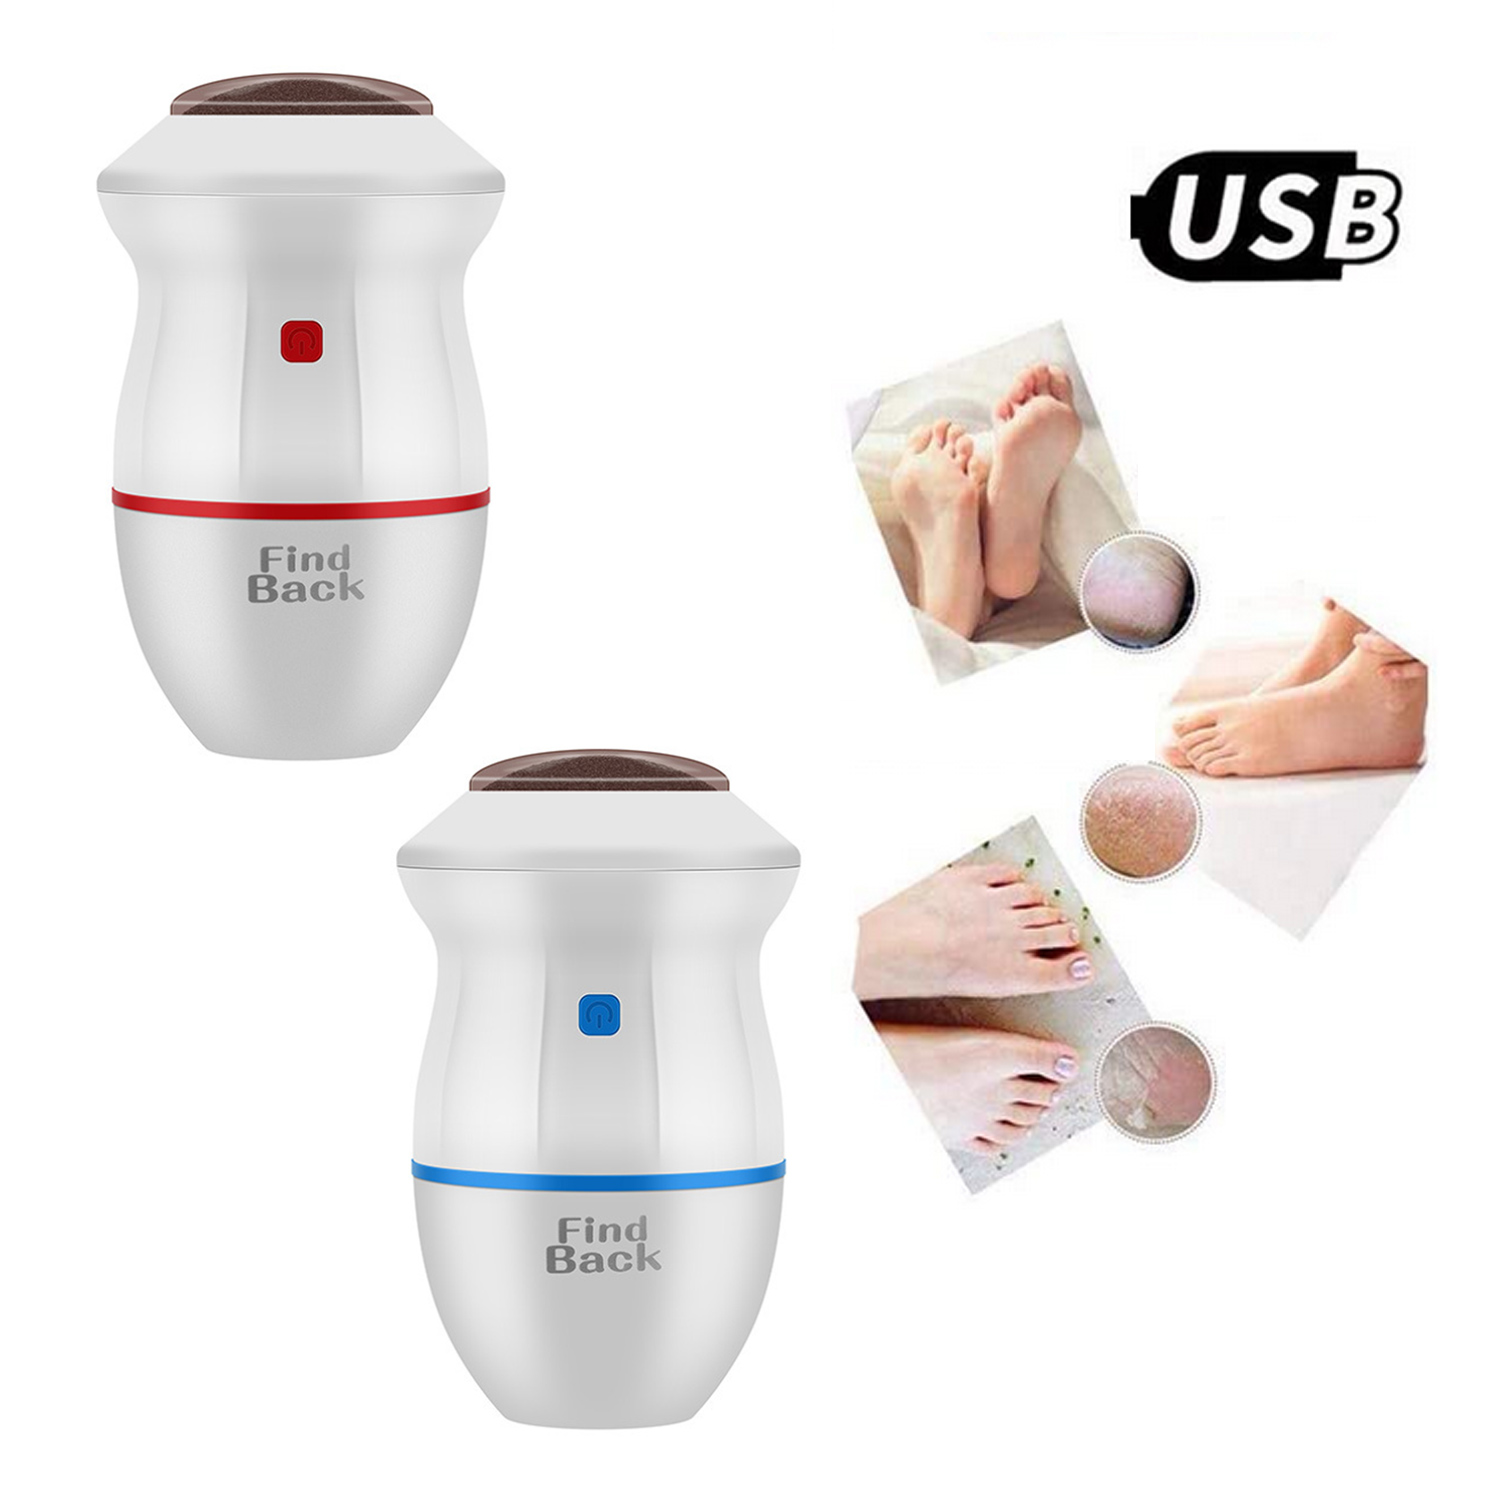 Electric Adsorption Foot File Callus Remover Pedicure for Dry Hard Dead Cracked Skin USB Rechargeable Foot Care Tool